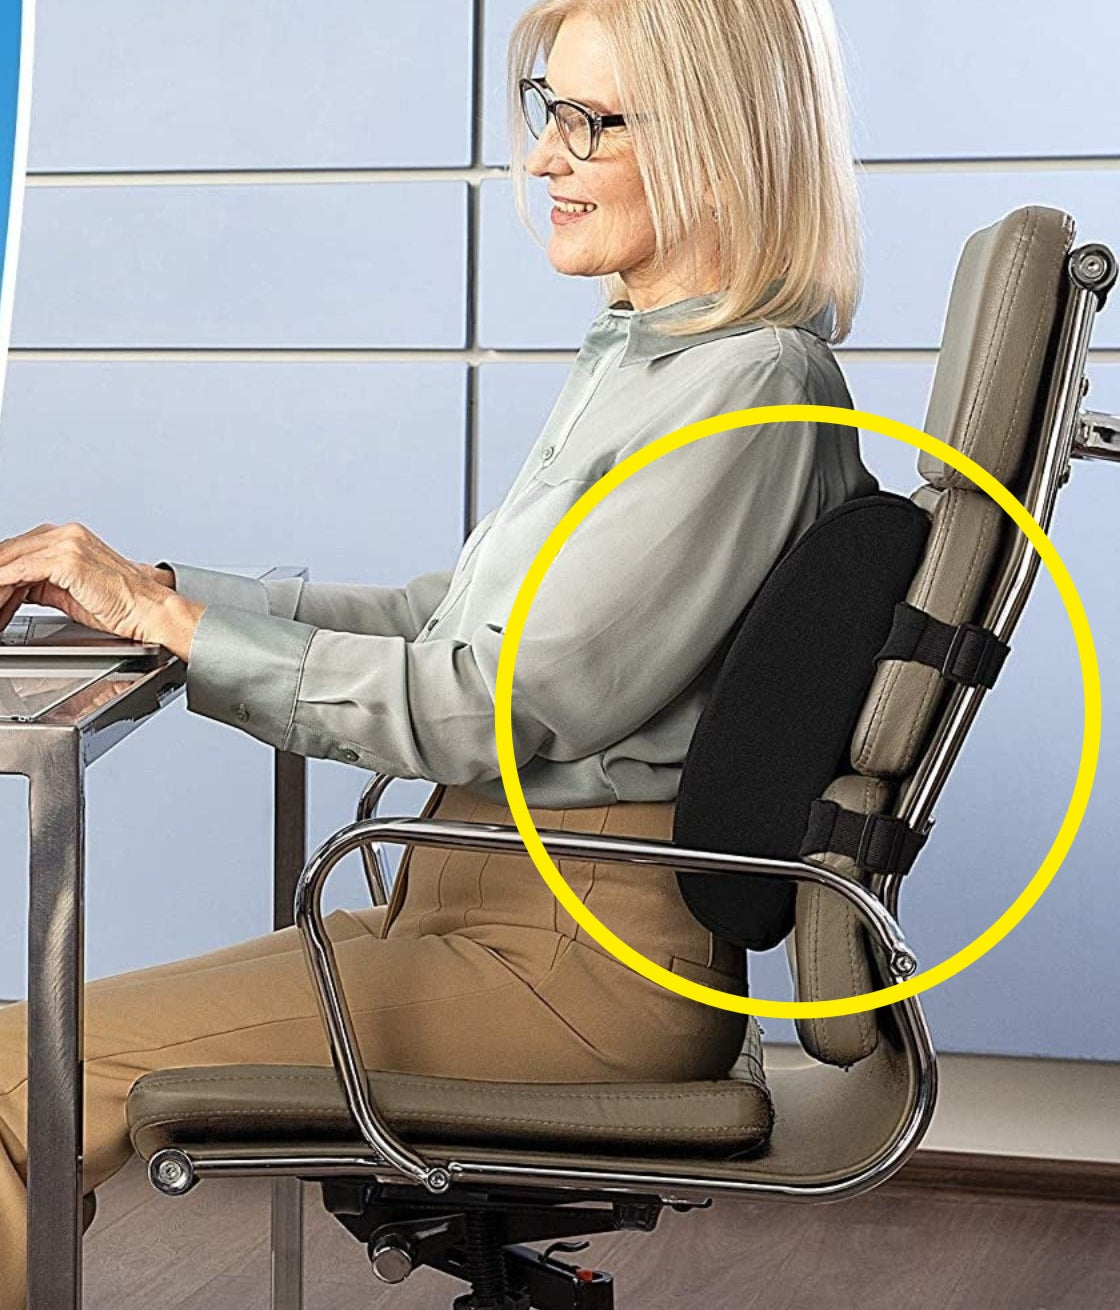 Someone sitting in an office chair leaning against the supportive back cushion